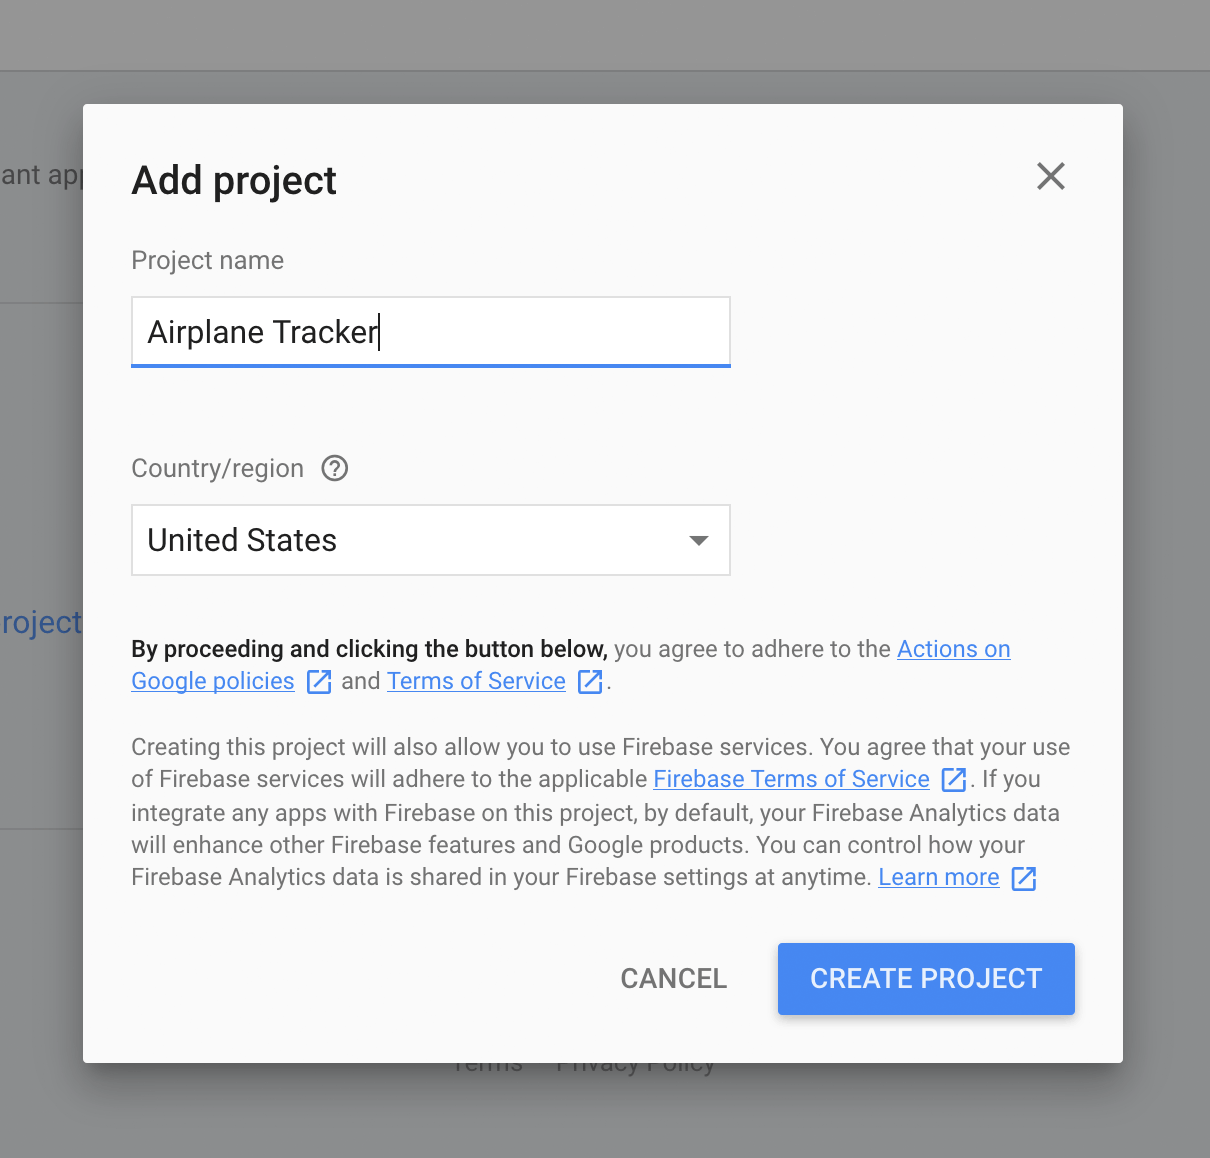 Google Actions Console - Add project popup